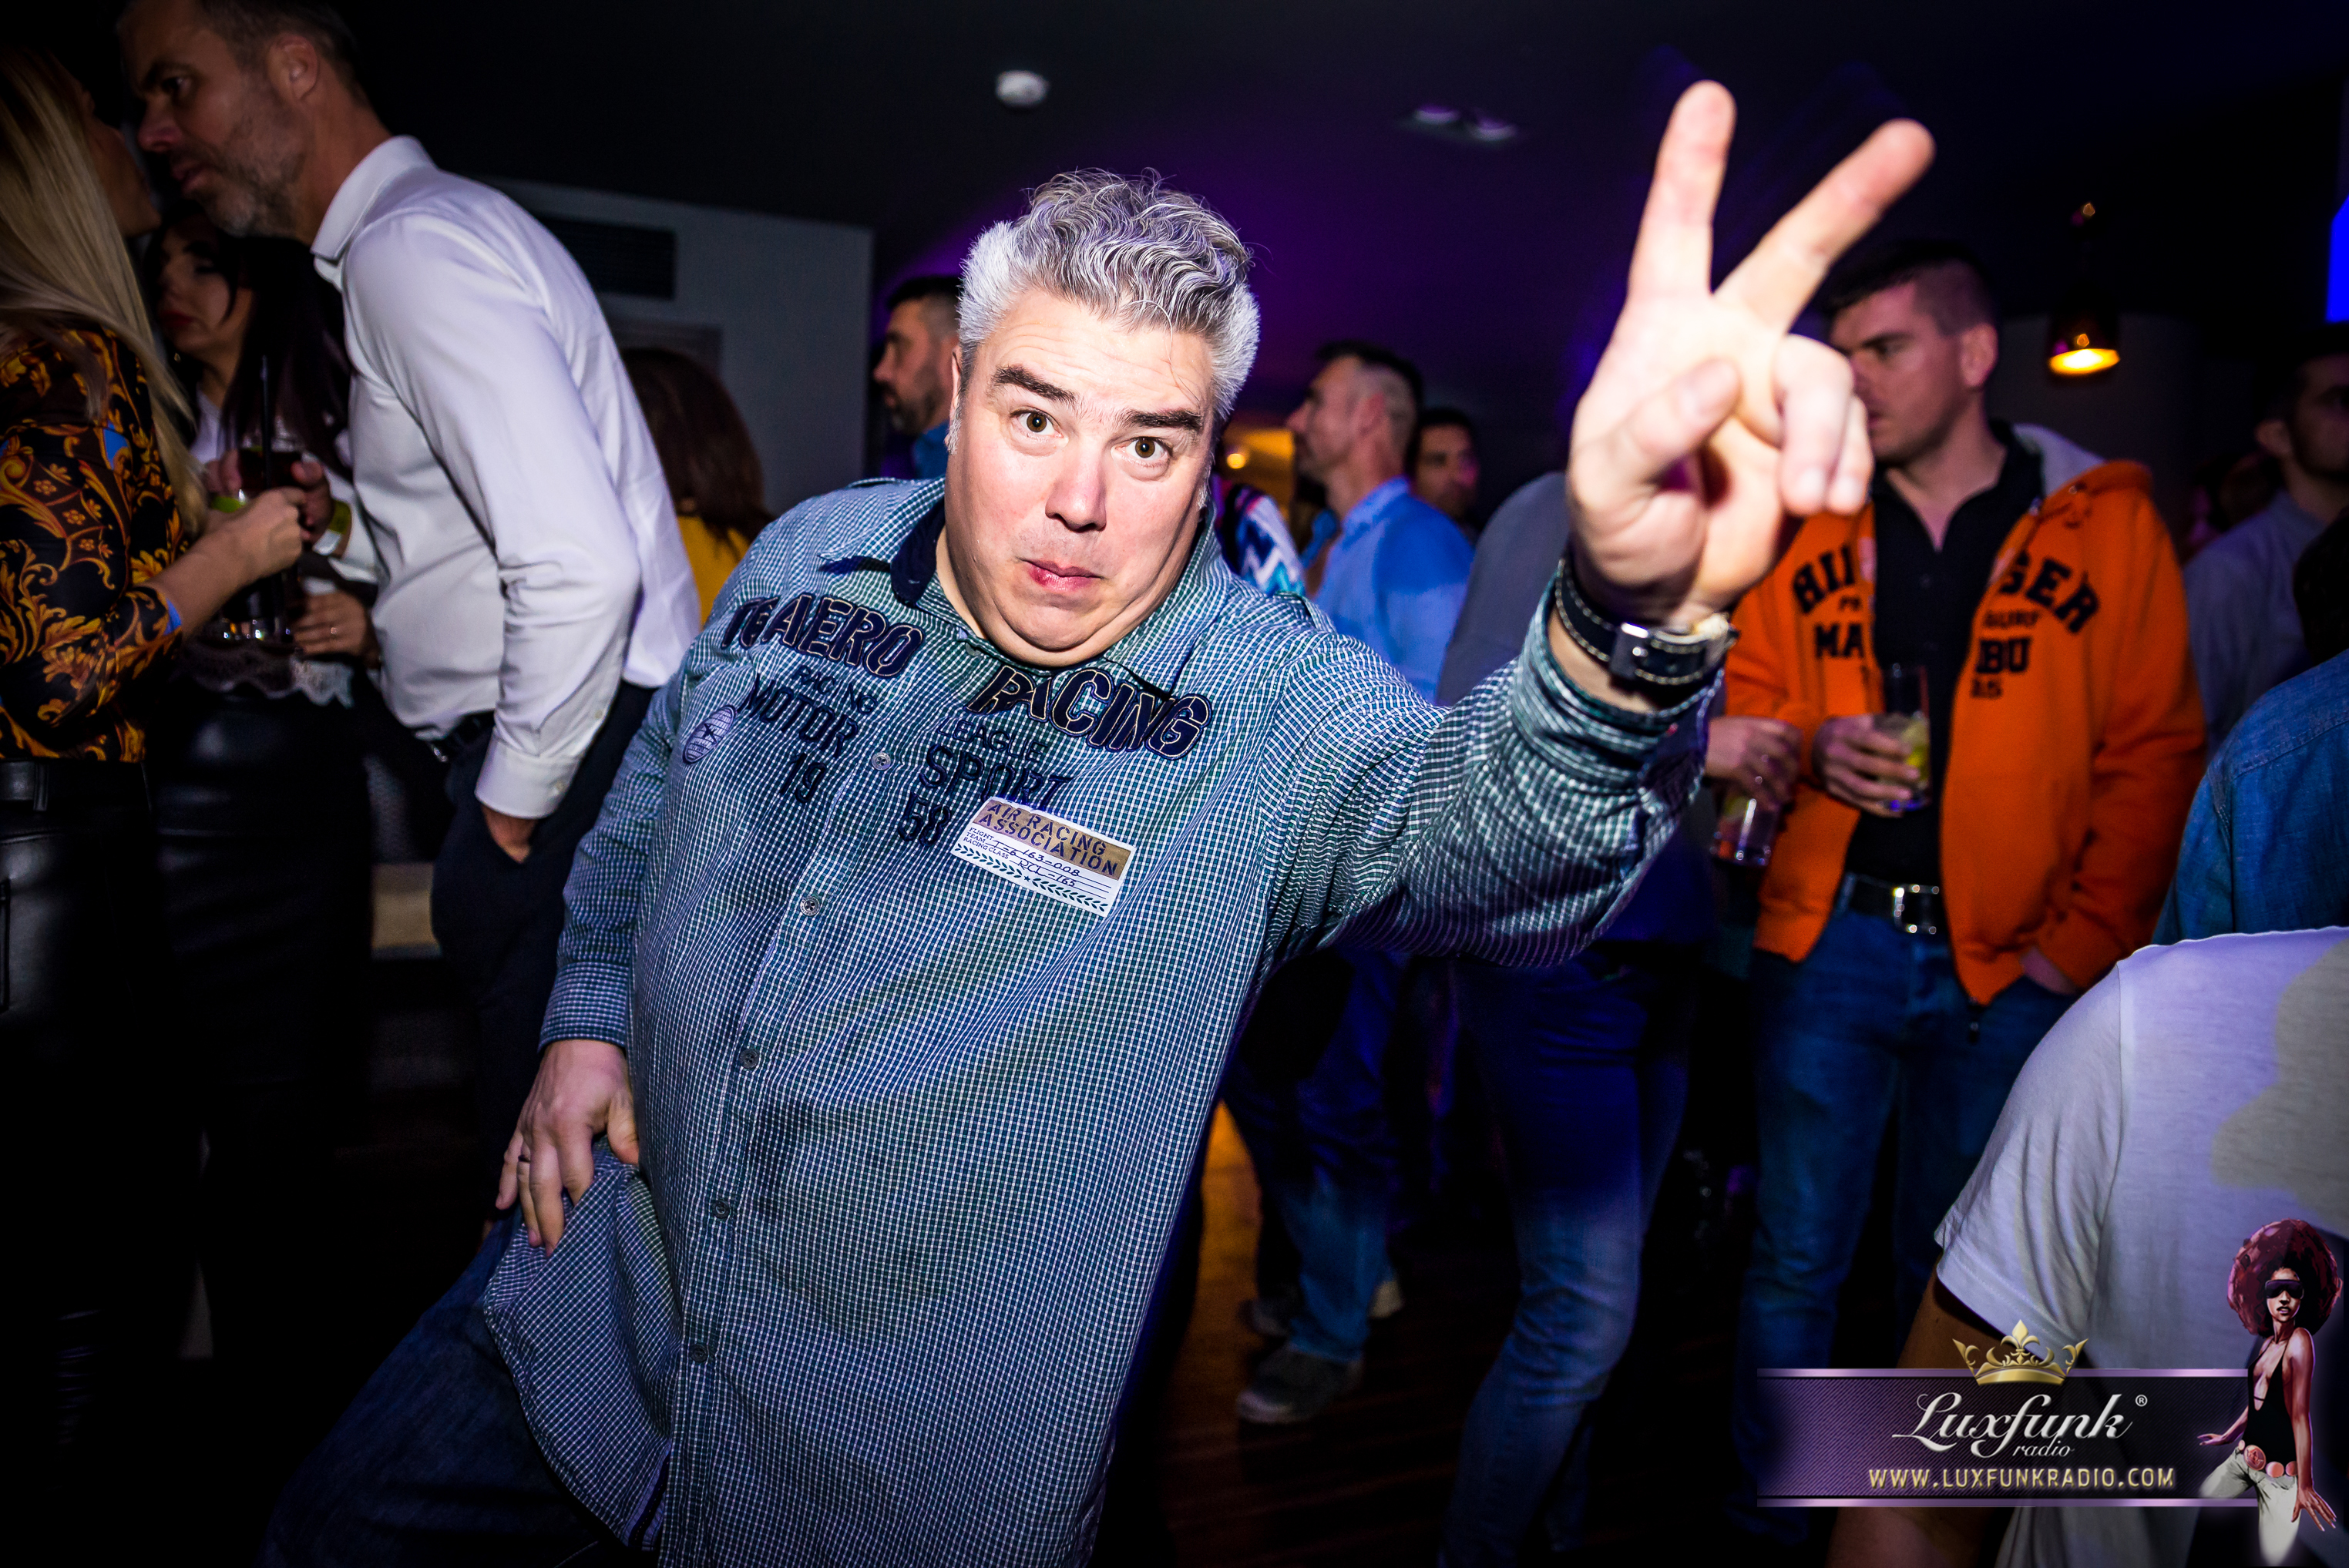 luxfunk-radio-funky-party-20191108-lock-budapest-1321